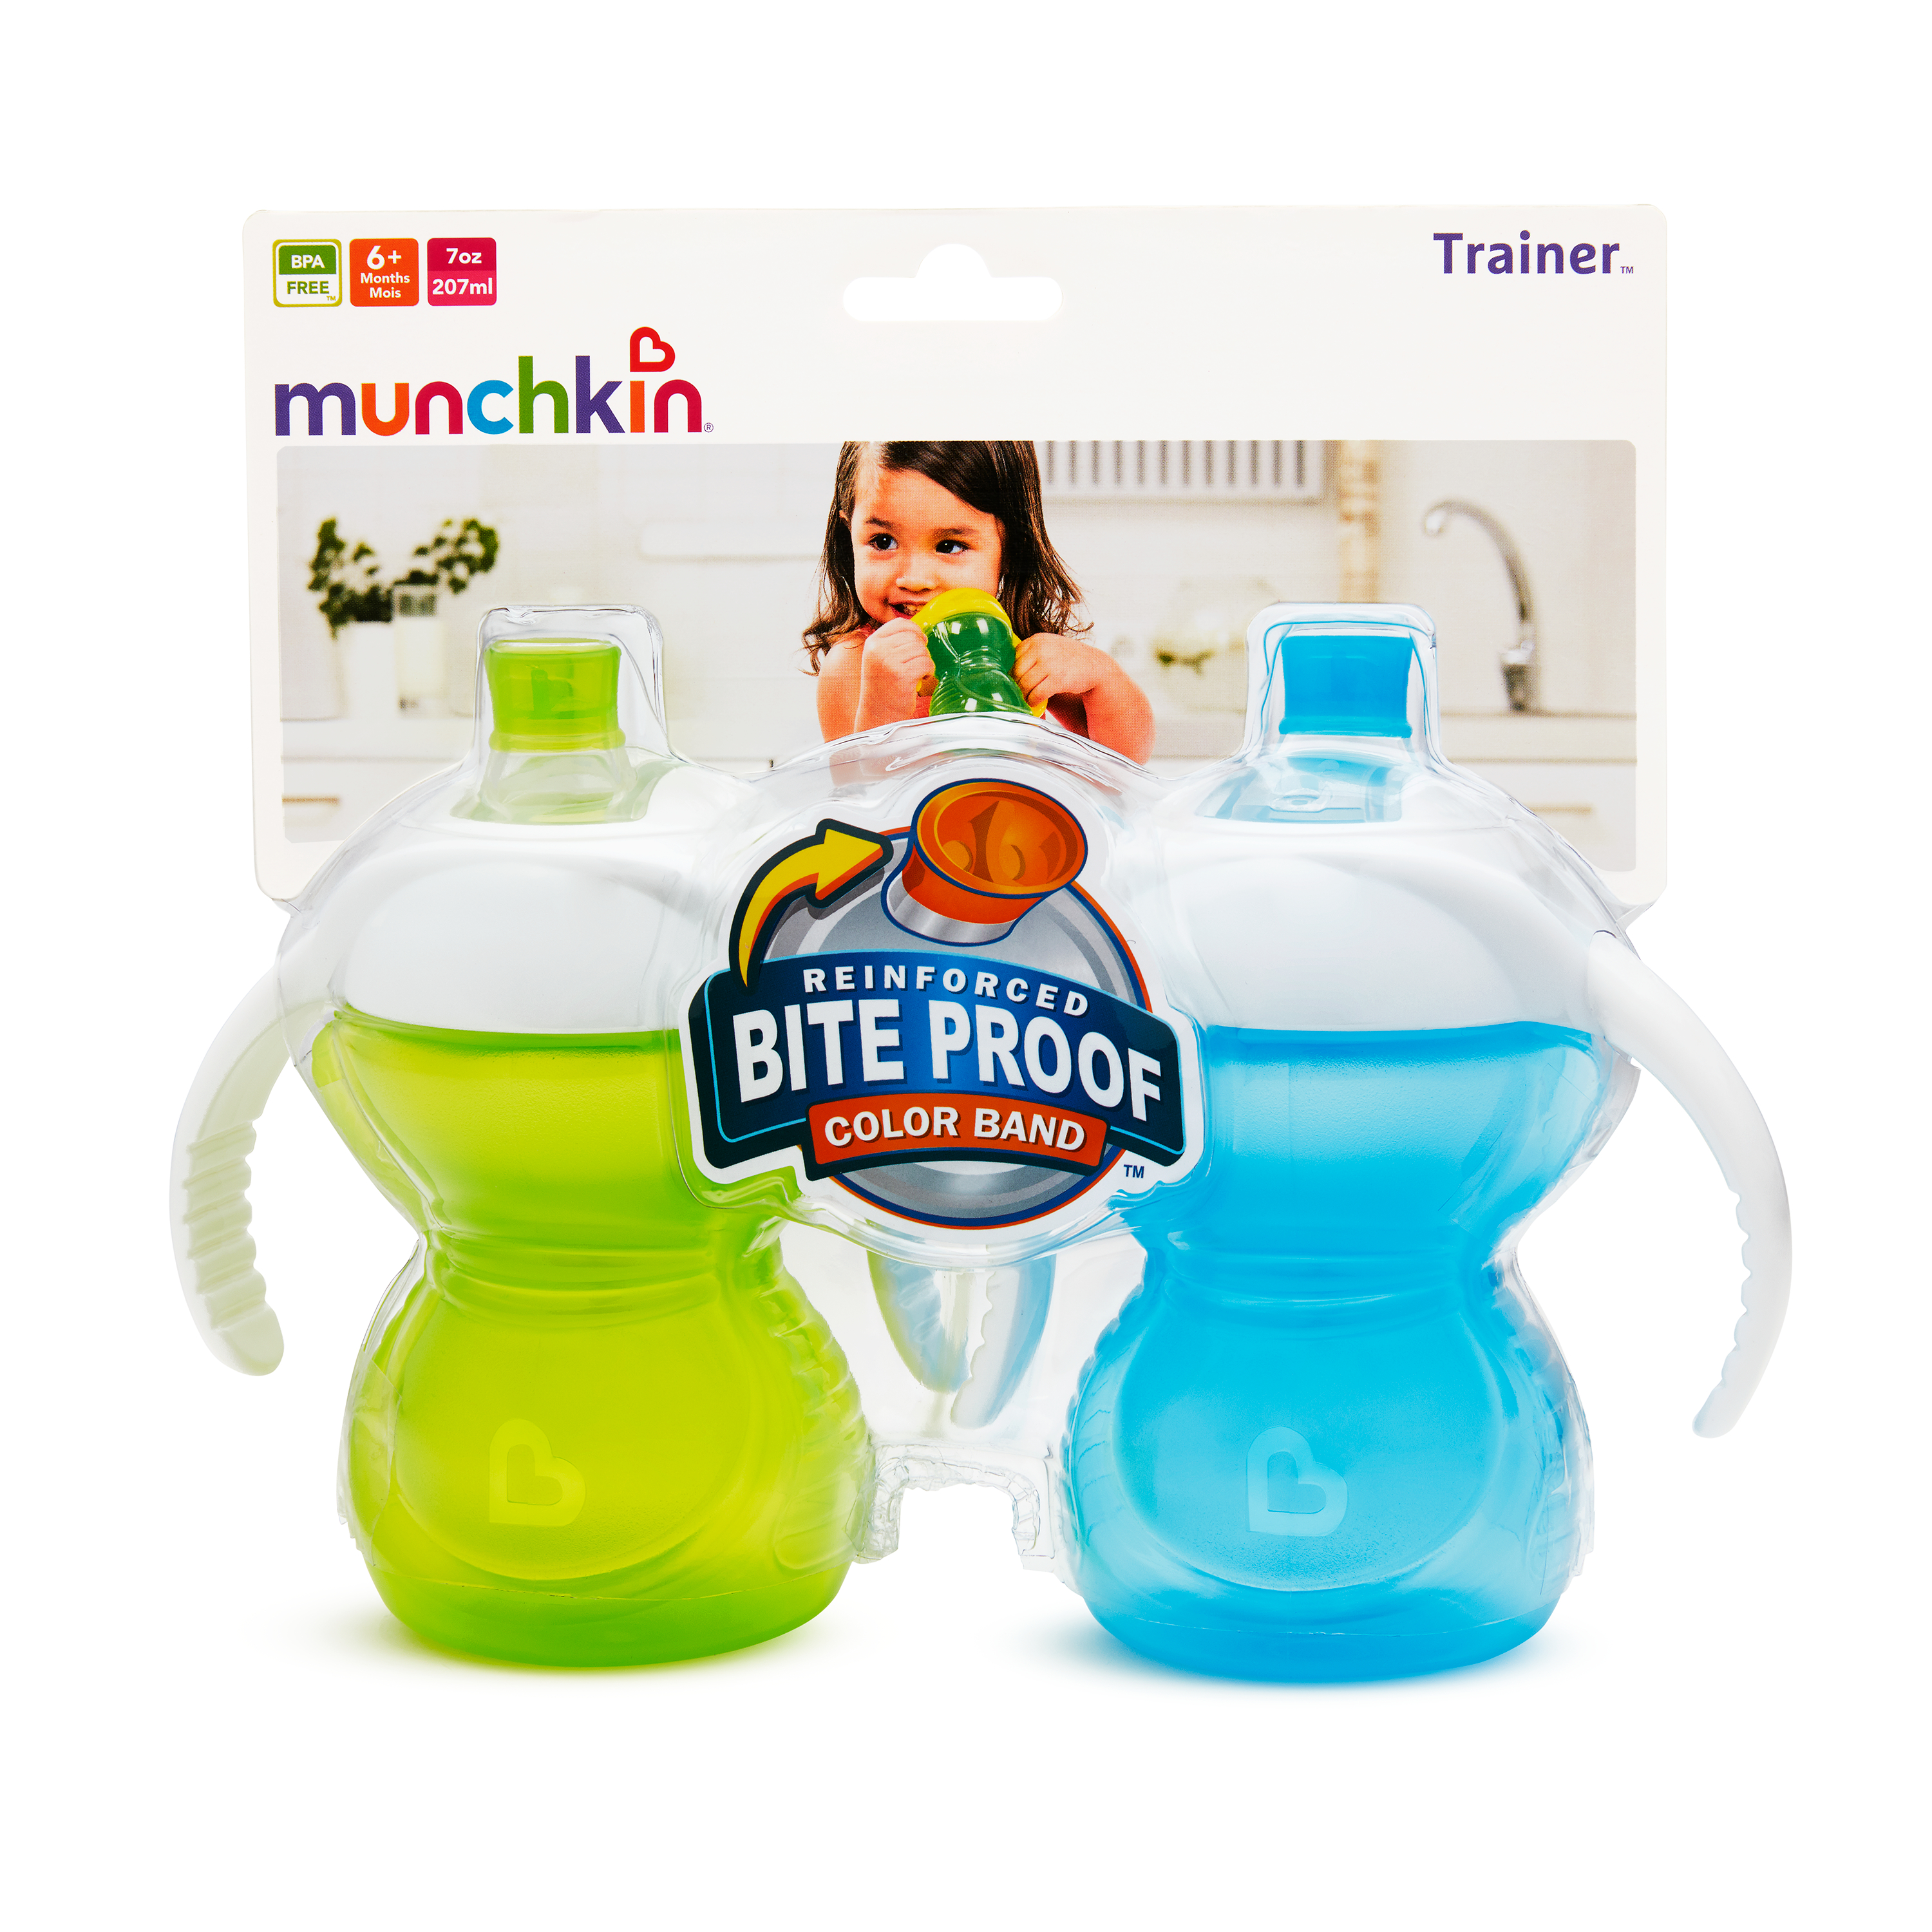 Munchkin Reinforced Bite Proof Color Band Trainer Cups 9+ Months 2 CT by Munchkin